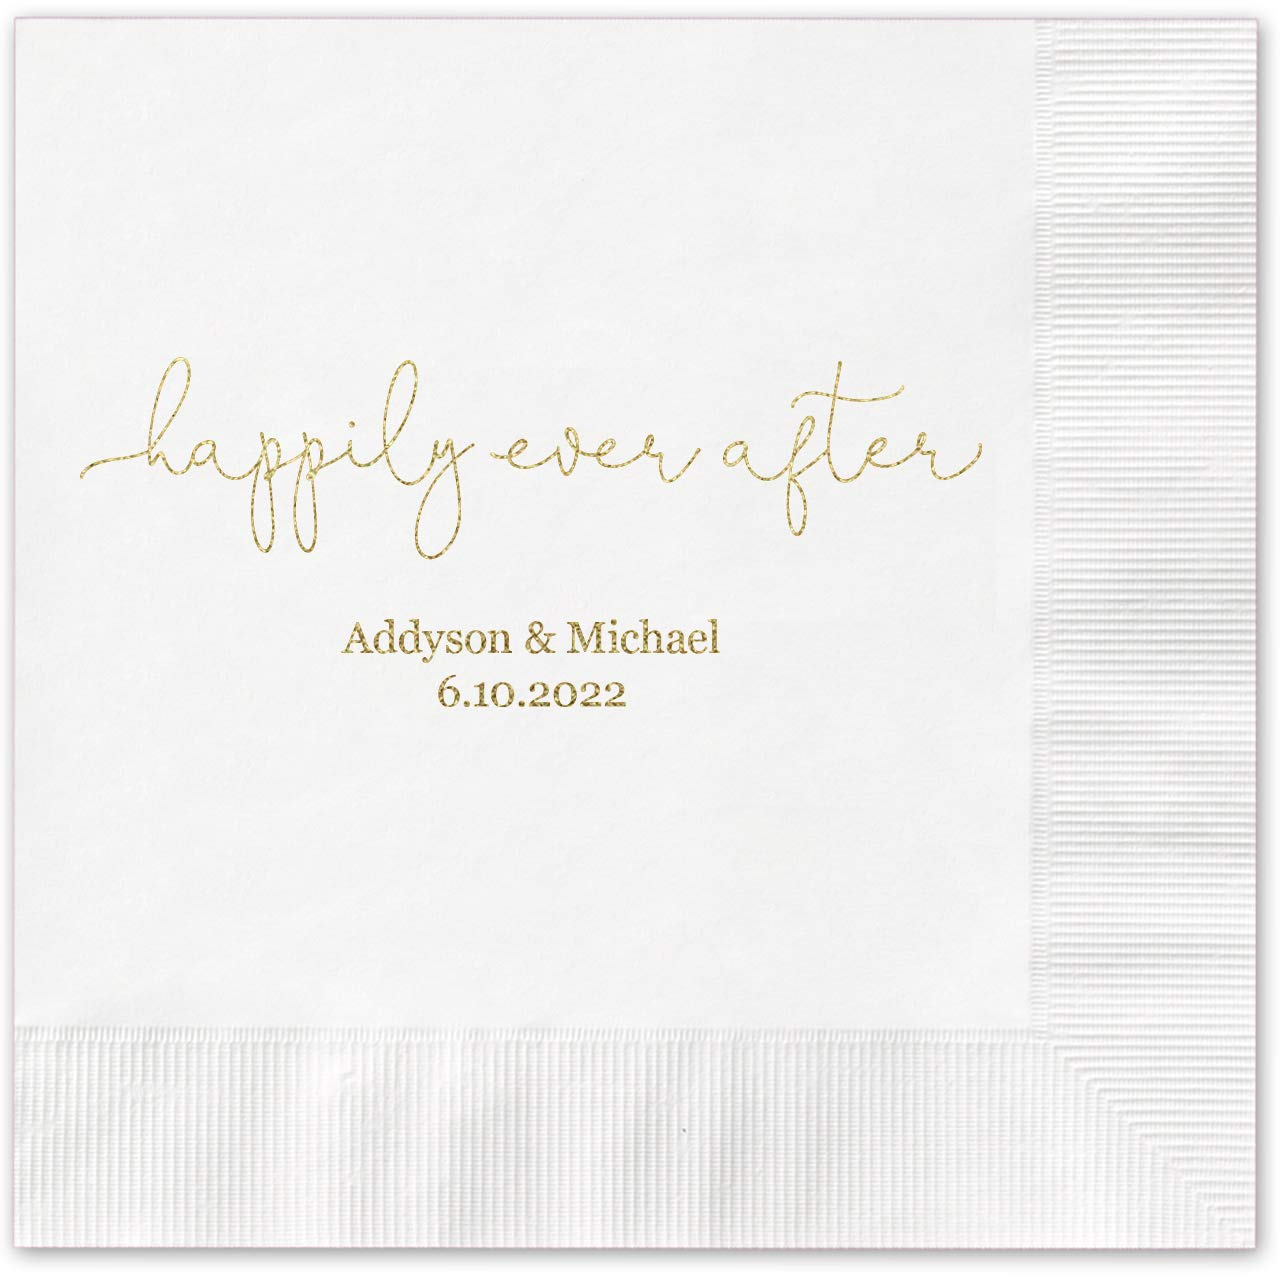 Happily Ever After Personalized Luncheon Napkins - 100 Custom Printed White Paper Coined Napkins with a choice of foil. 6 1/2'' x 6 1/2'' folded, Made in the USA